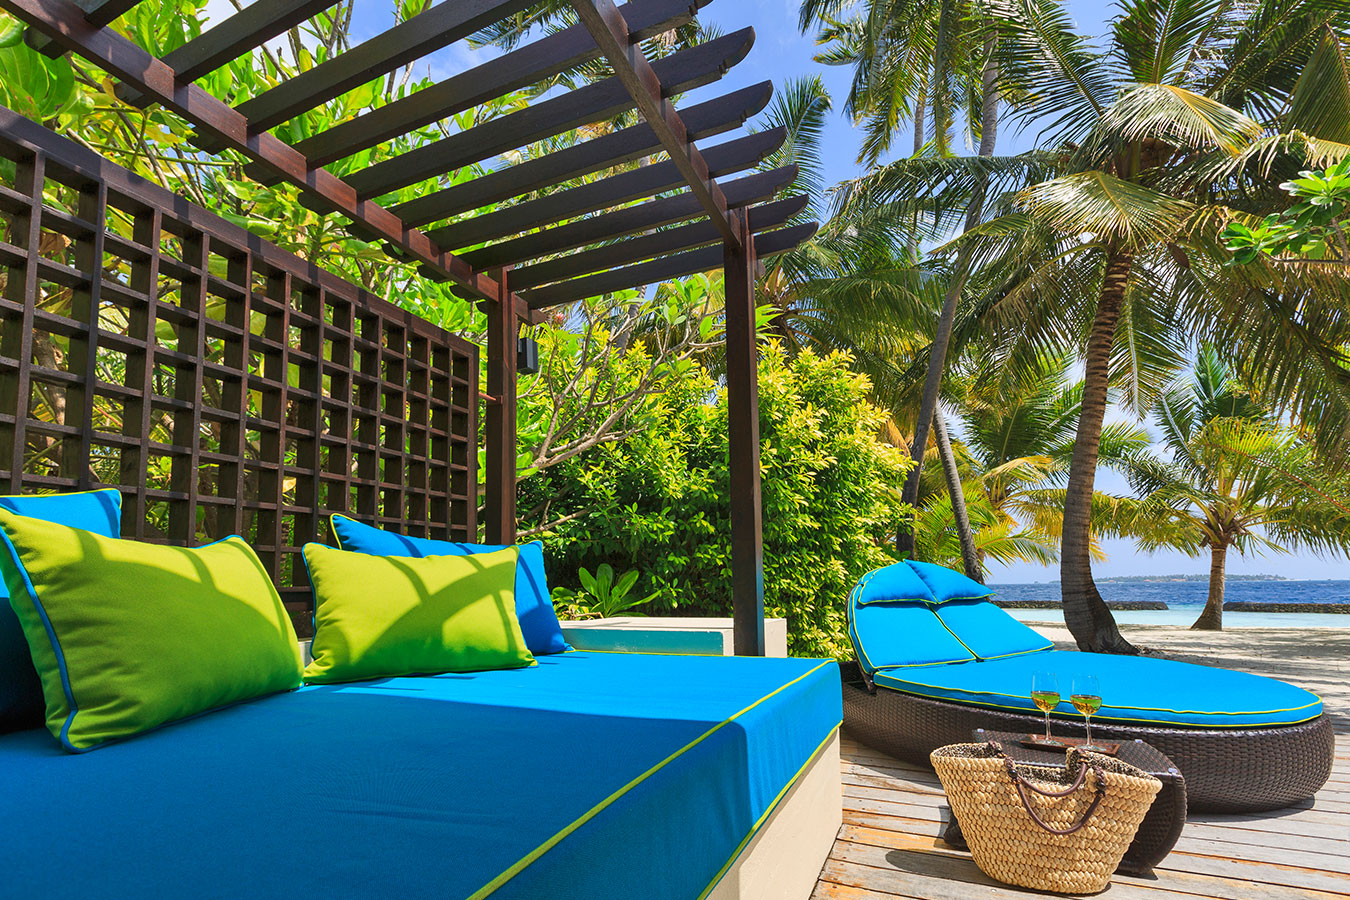 Kurumba Maldives - Two Bedroom Kurumba Residence Balcony and View  Image - Maldives Resorts Pool Villa